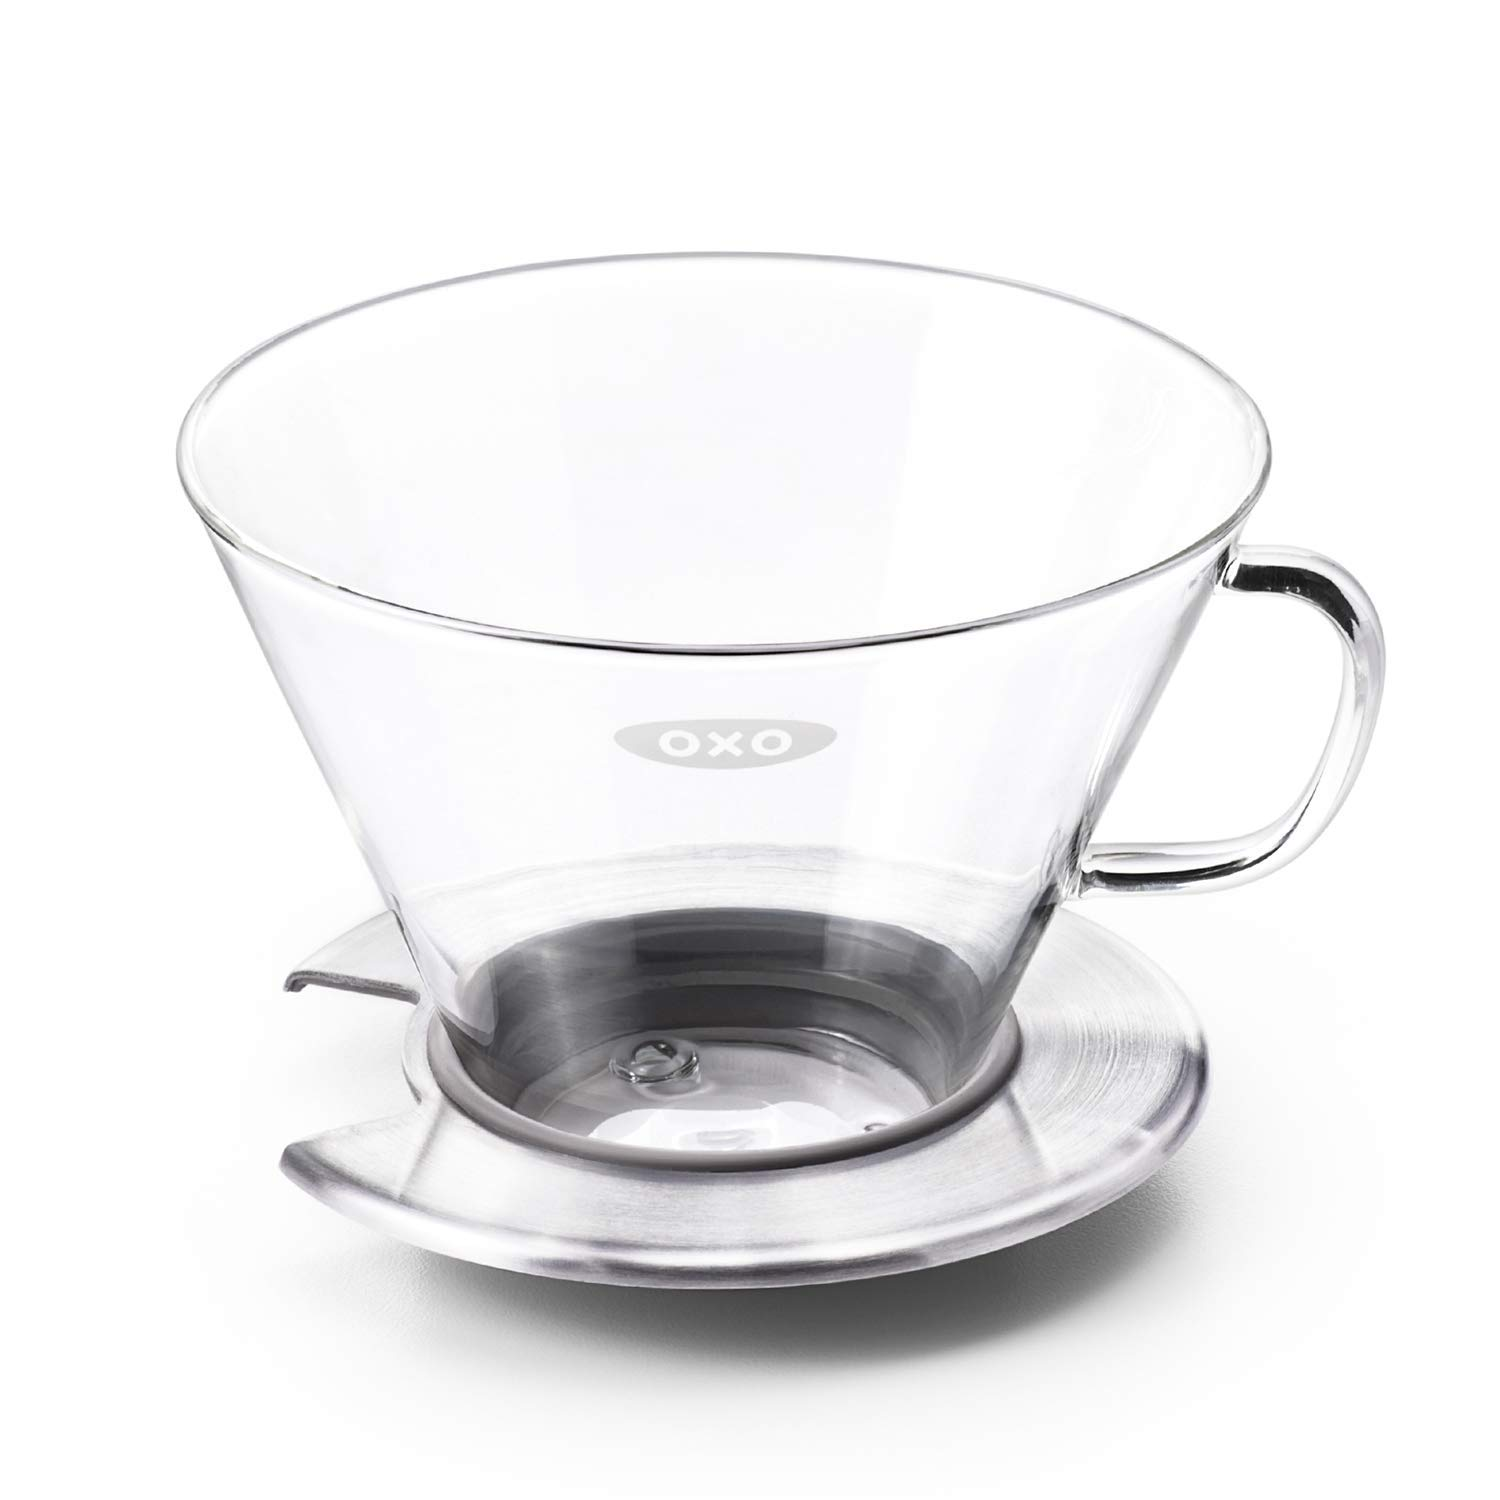 OXO BREW Glass Pour-Over Coffee Dripper by OXO